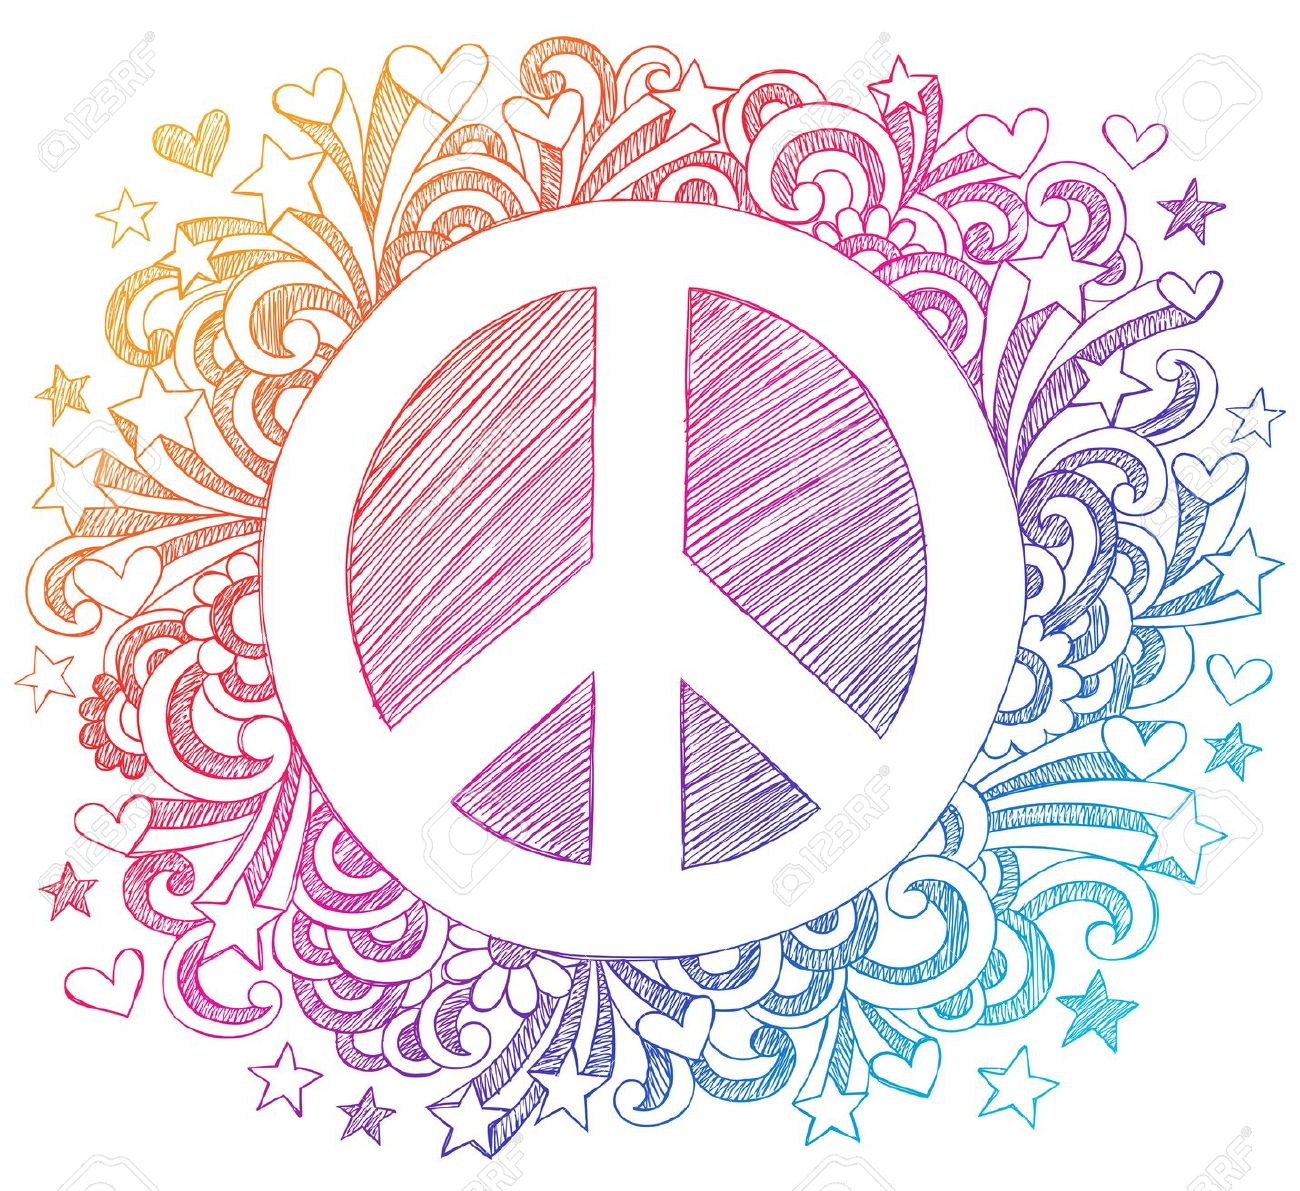 Nice Images Collection: Peace Desktop Wallpapers